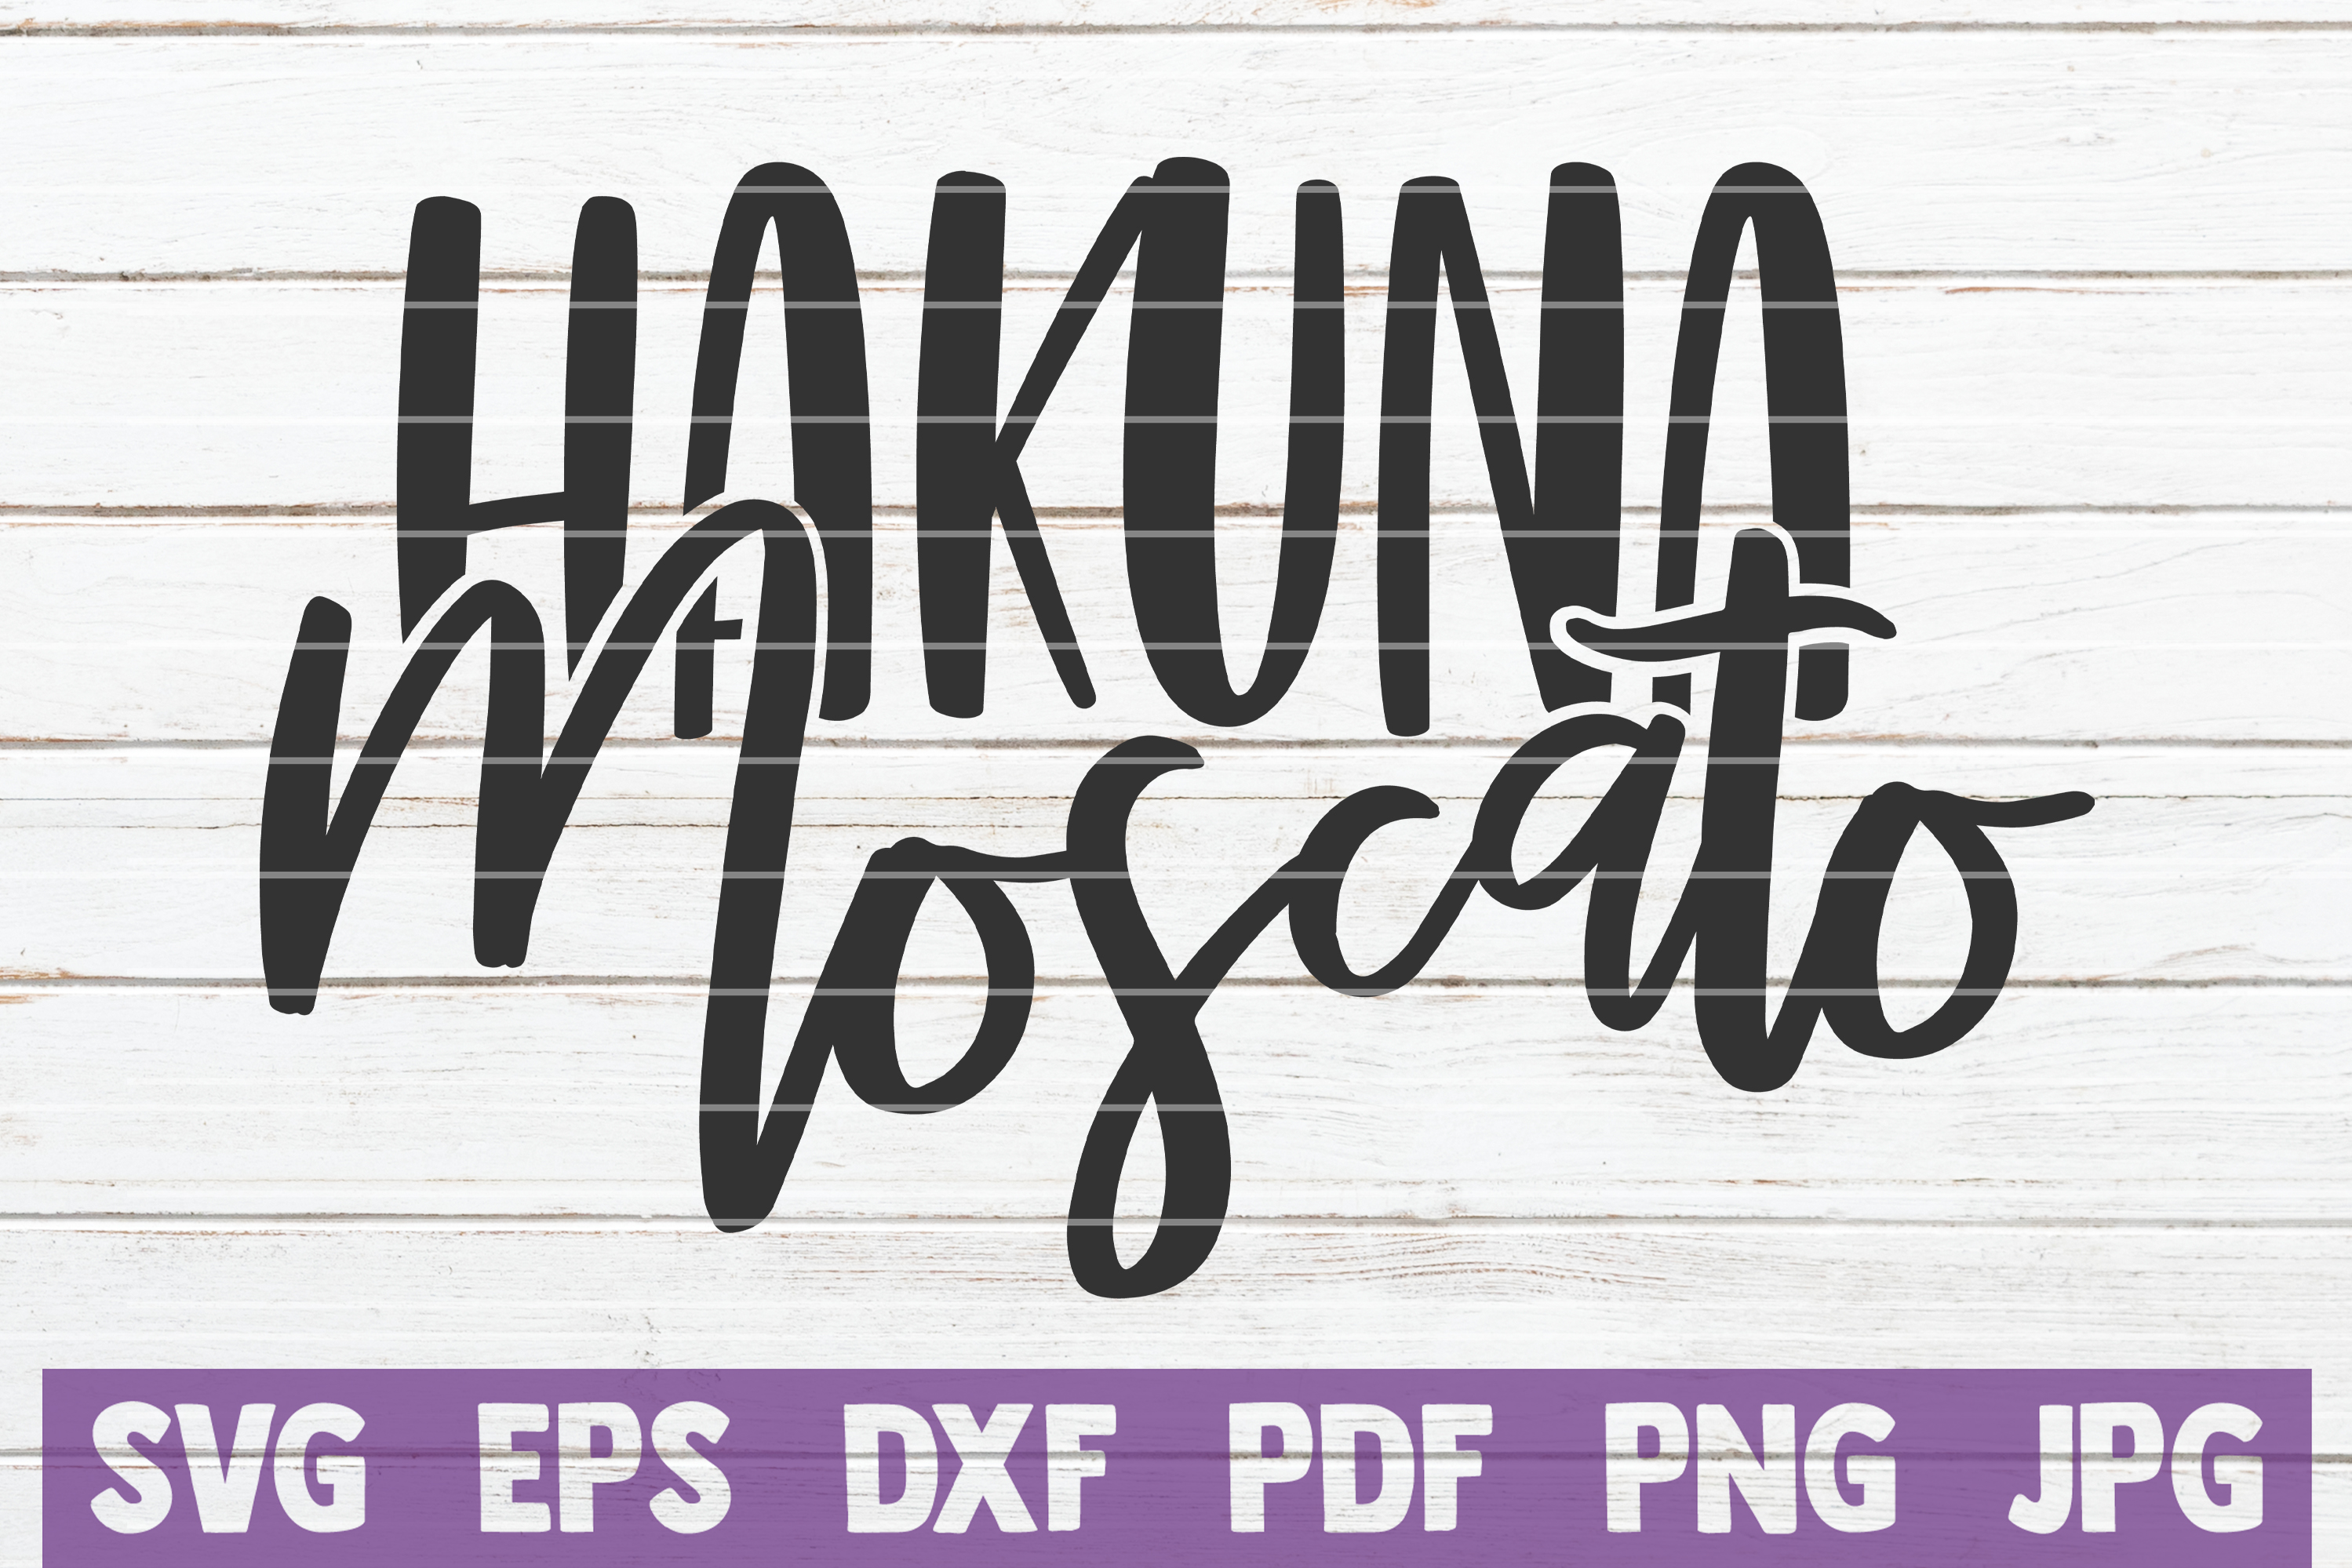 Download Free Hakuna Moscato Graphic By Mintymarshmallows Creative Fabrica for Cricut Explore, Silhouette and other cutting machines.